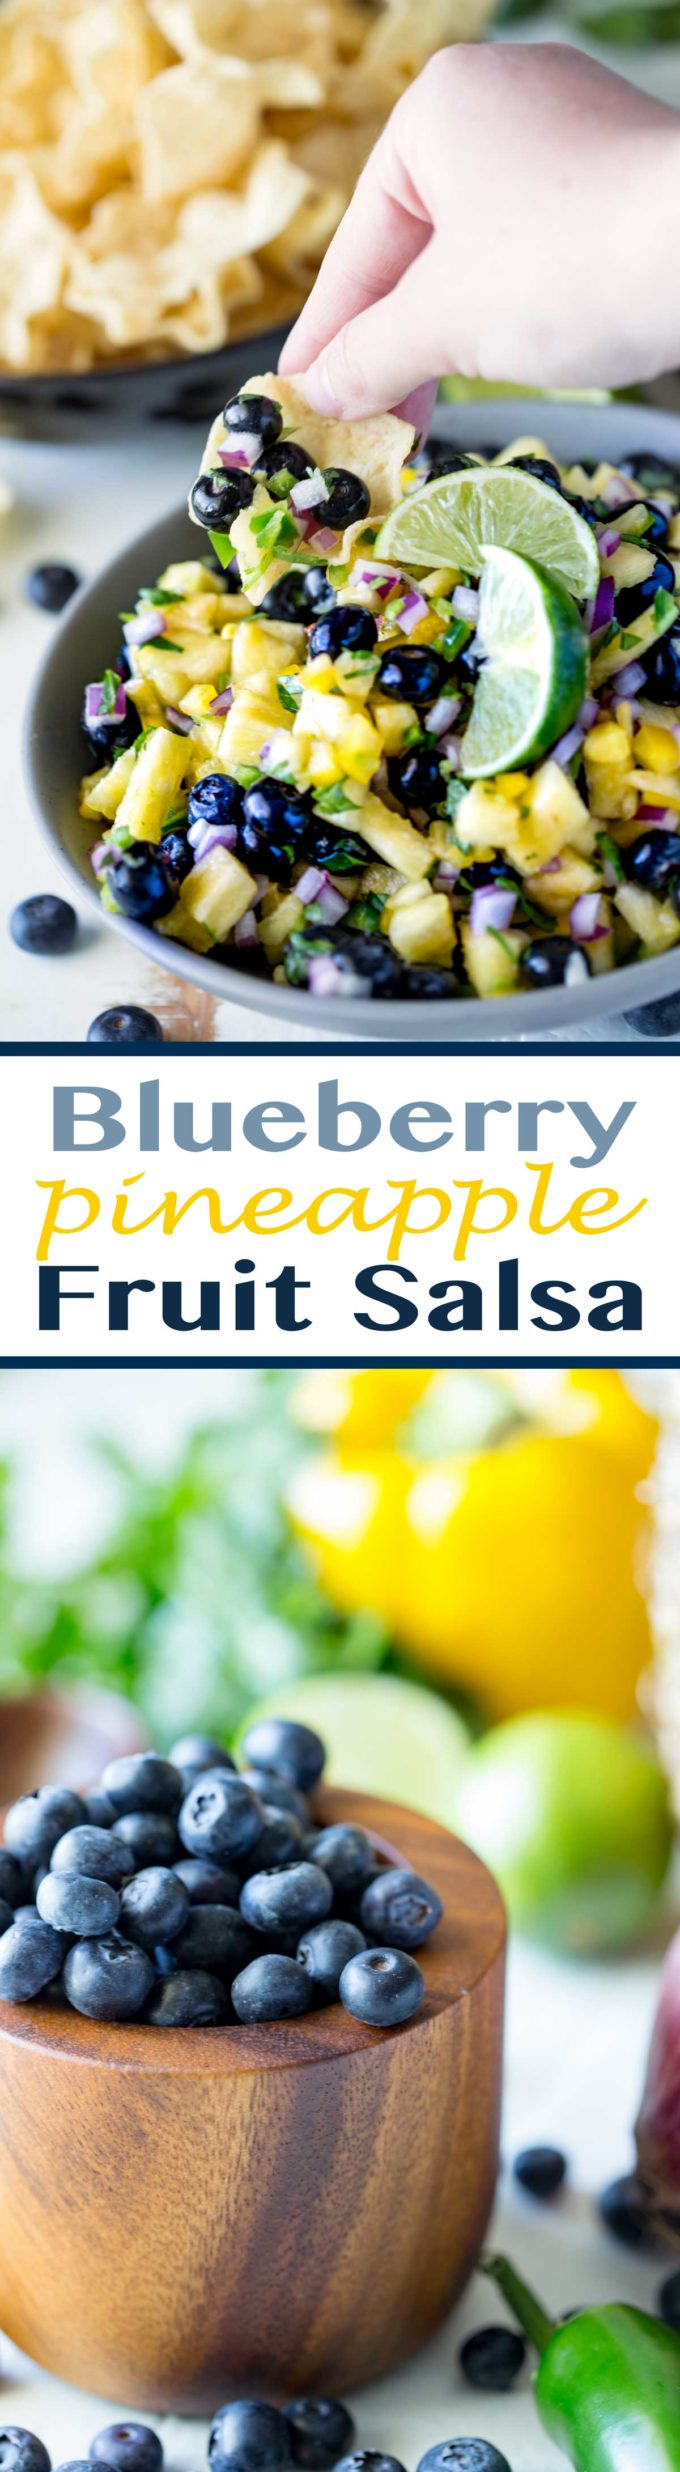 Blueberry pineapple fruit salsa eazy peazy mealz for Fruit salsa for fish